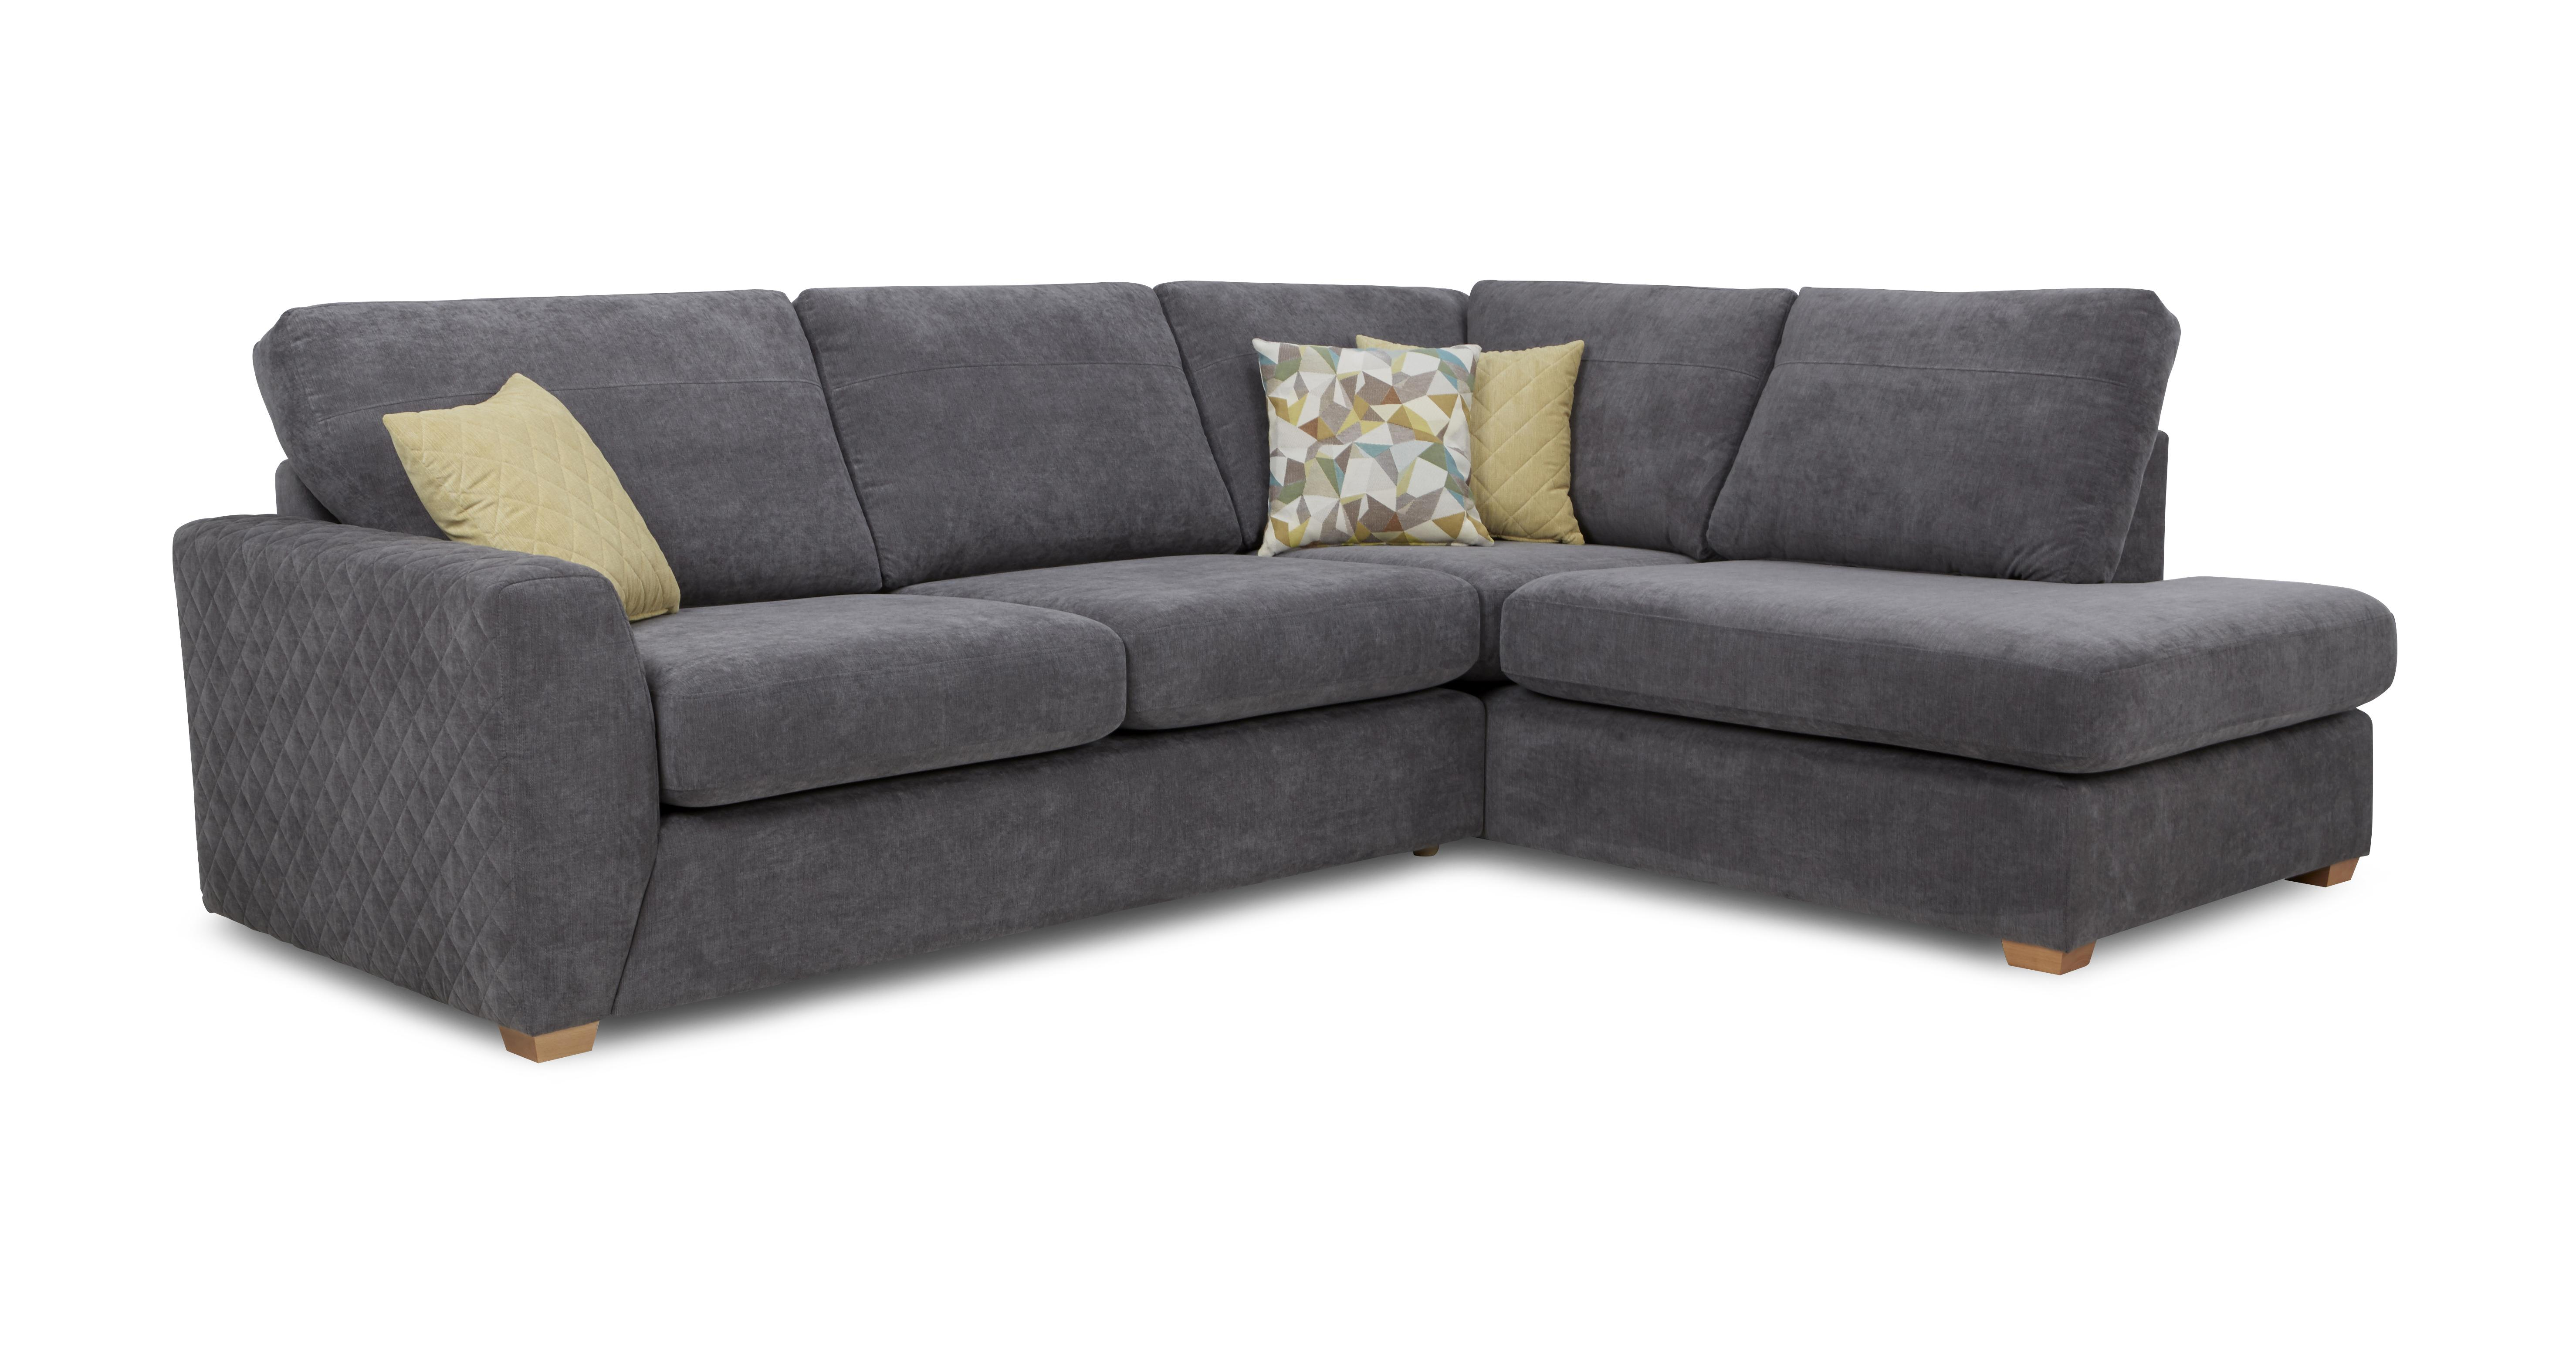 dfs corner sofa grey fabric black seat covers astaire graphite left hand facing